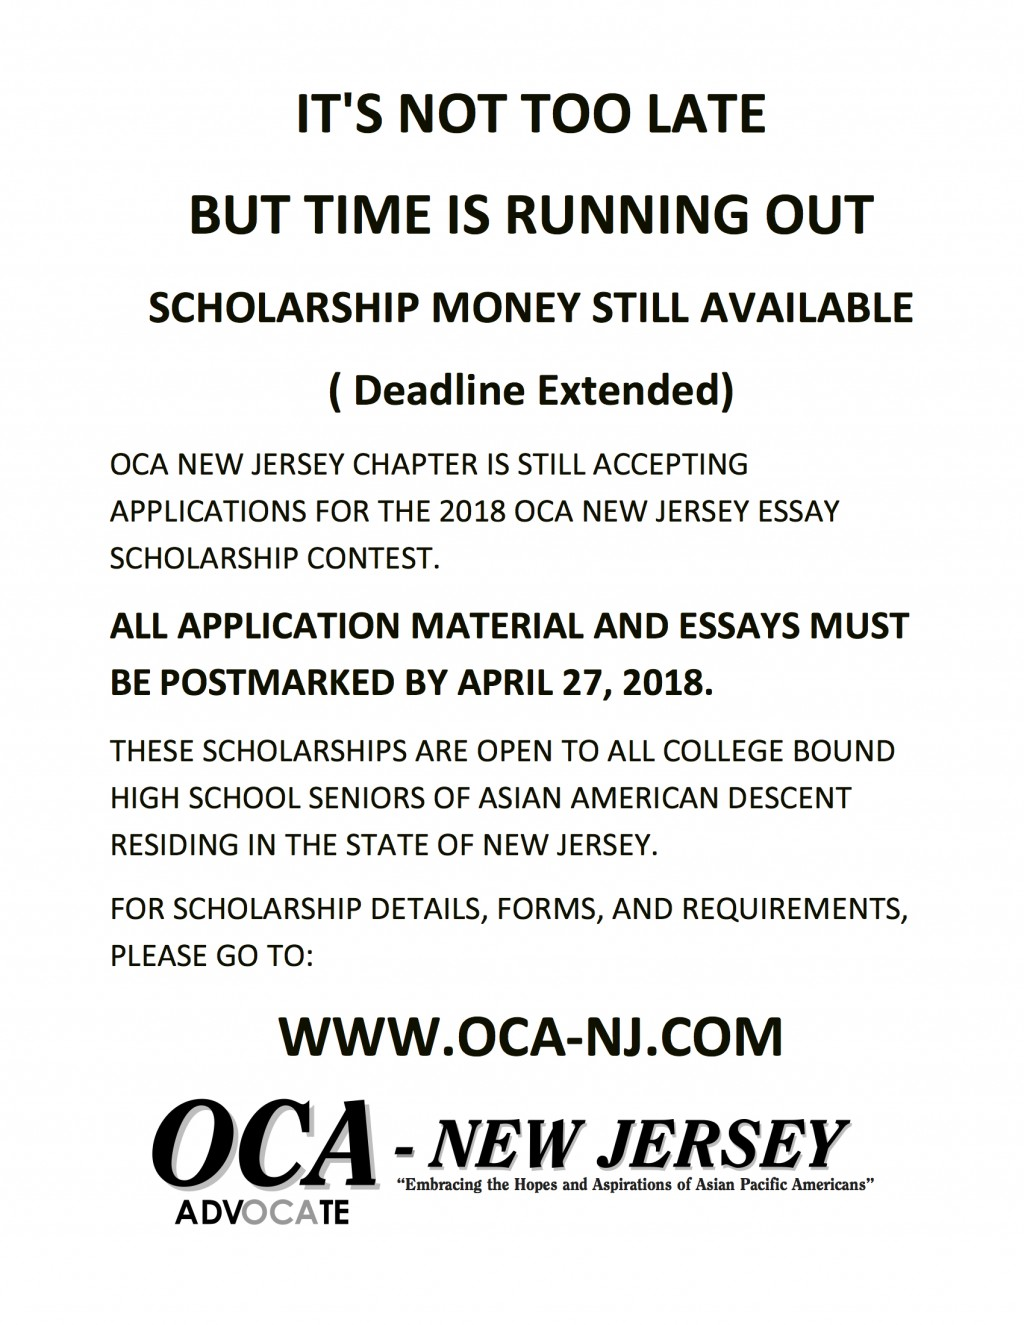 014 Essay Example Scholarships Entended Deadline Oca Nj Shocking 2018 Canada 2019 No For High School Juniors Large